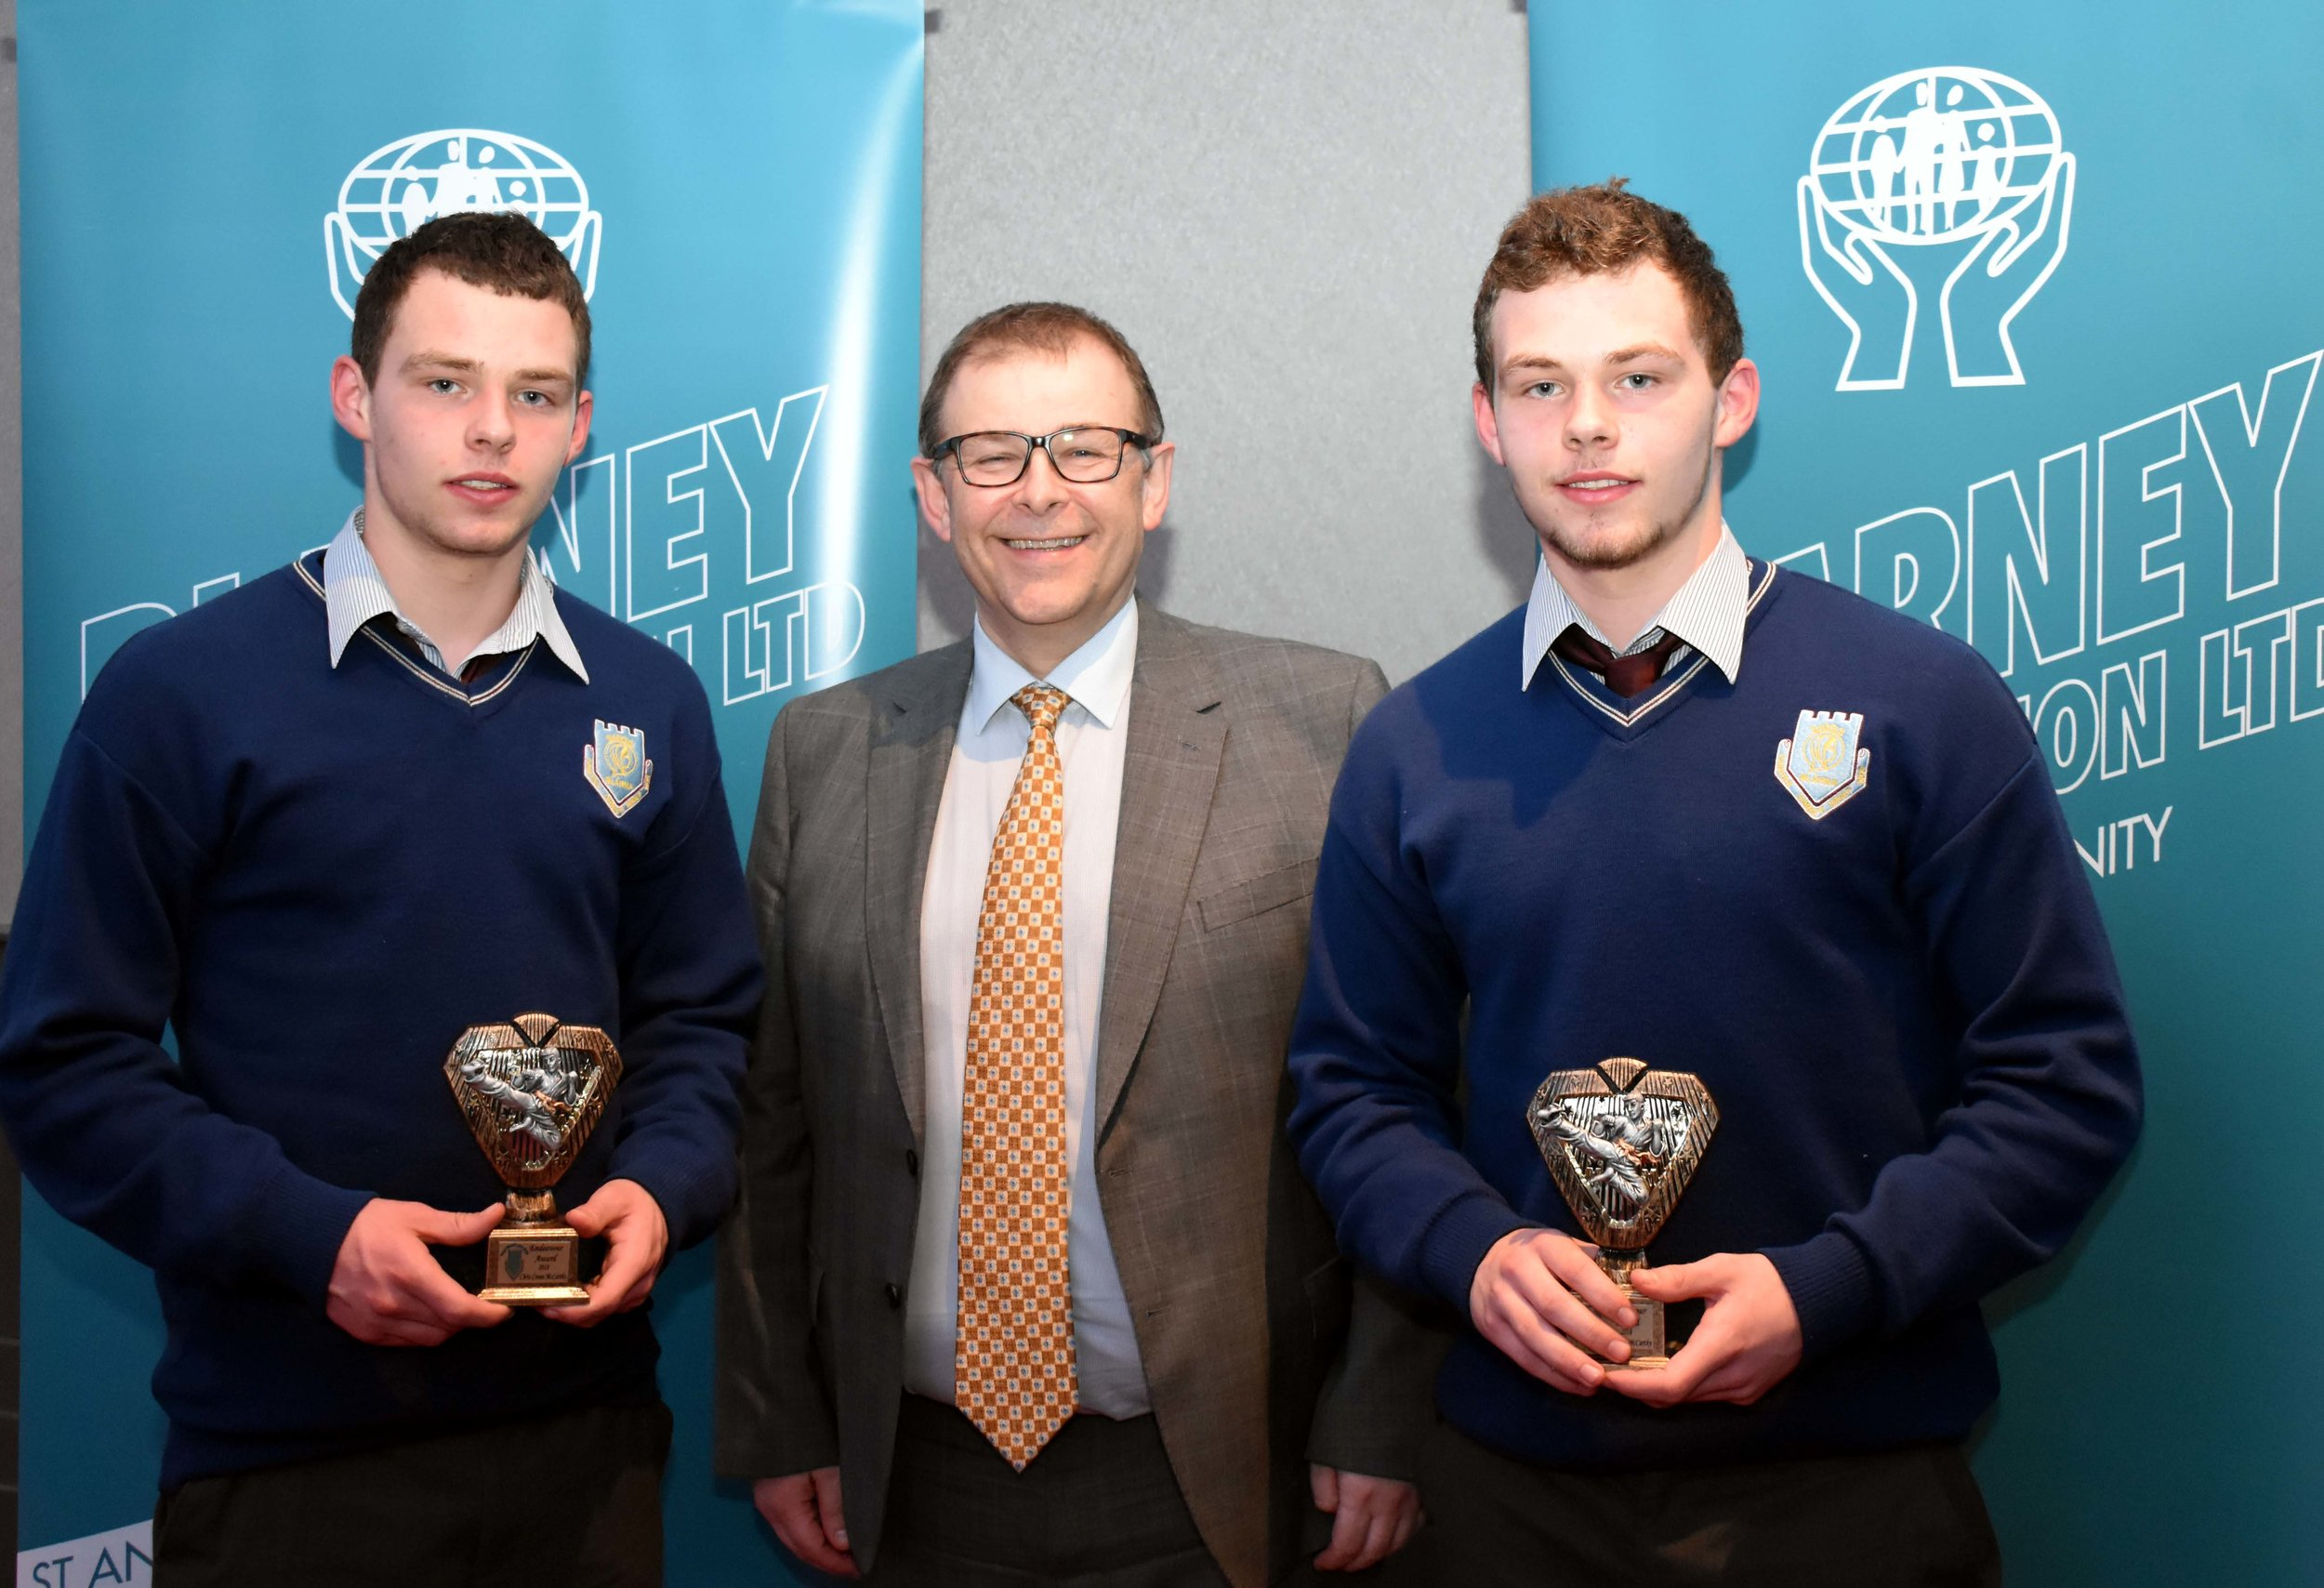 - Chris and Seán Crean McCarthy receiving an endeavour award for representing Ireland in the European Karate Finals in Sochi, Russia. Seán won a silver medal and Chris came 5th in the same competition. (Pictured with Mr. Mark McGloughlin - BOM and Blarney Credit Union)